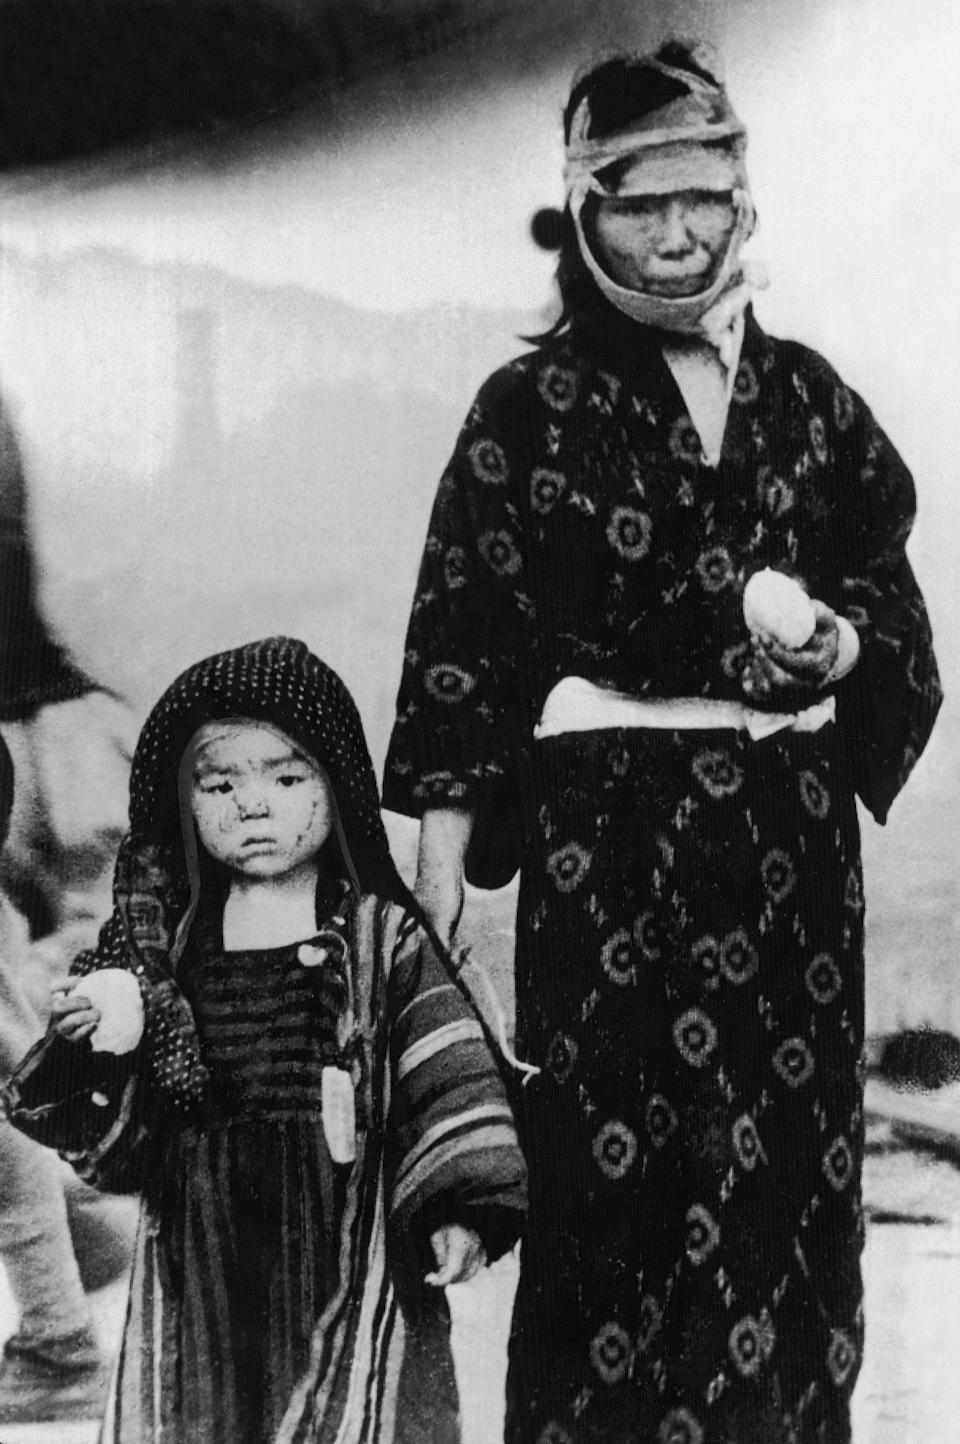 A Japanese woman is seen with a child in traditional Japanese clothing, who survived the atomic bomb dropped on Nagasaki, in Nagasaki, Japan, in this Aug. 9, 1945 file photo. Their faces are marked with burns by the heat of the explosion. Scanty food rations are given out to the suffering public.